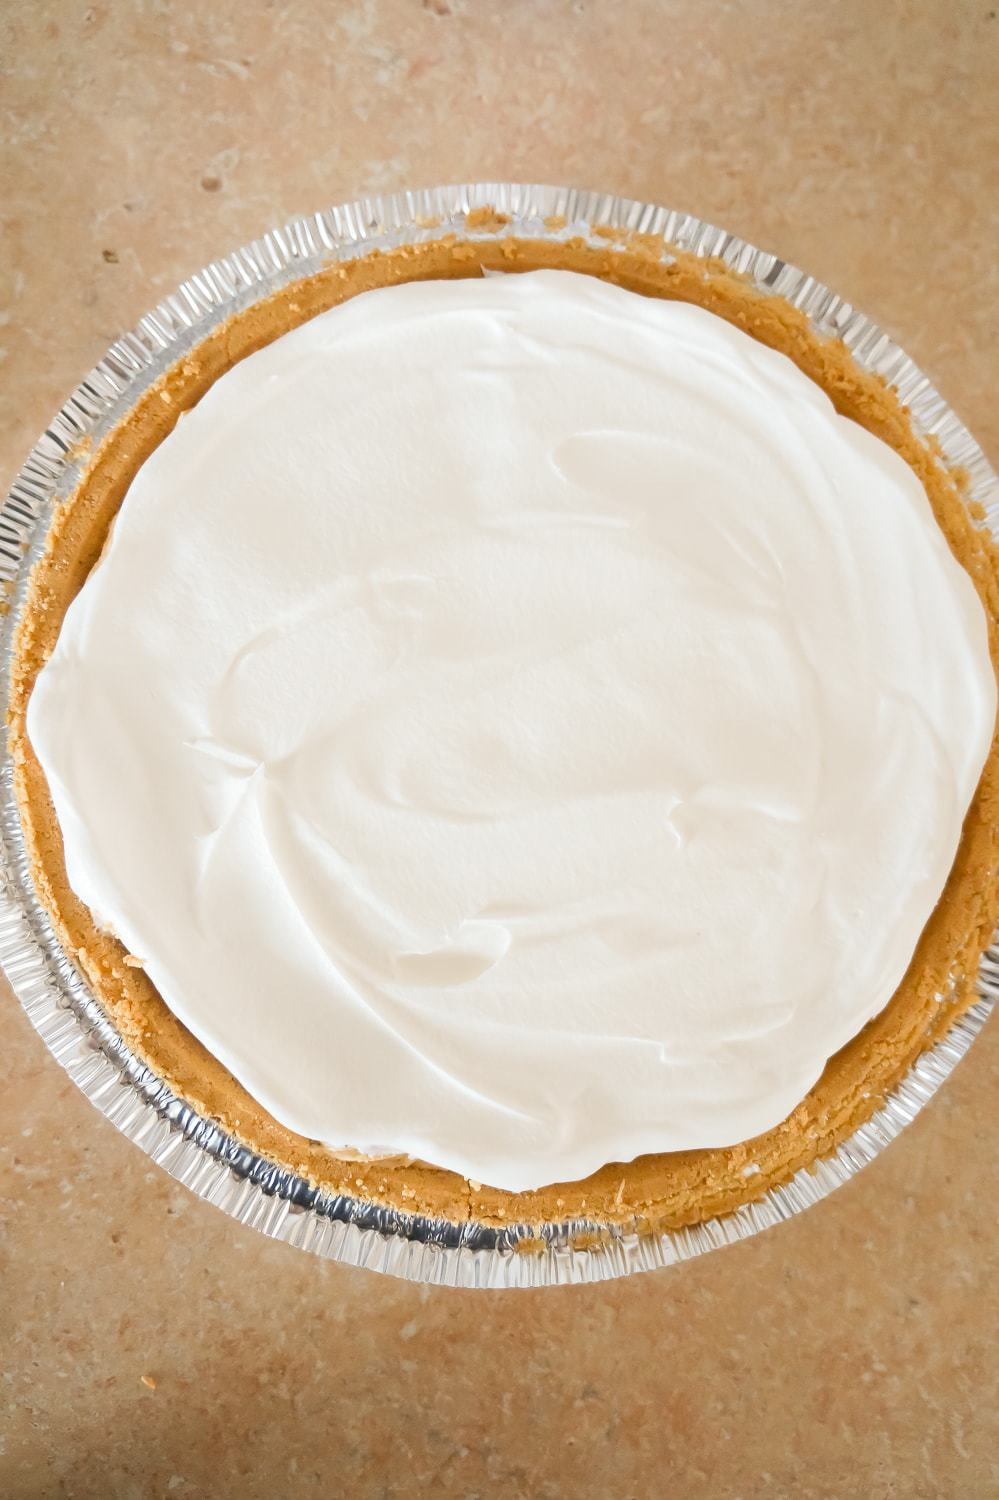 Cool Whip spread on top of peanut butter pie